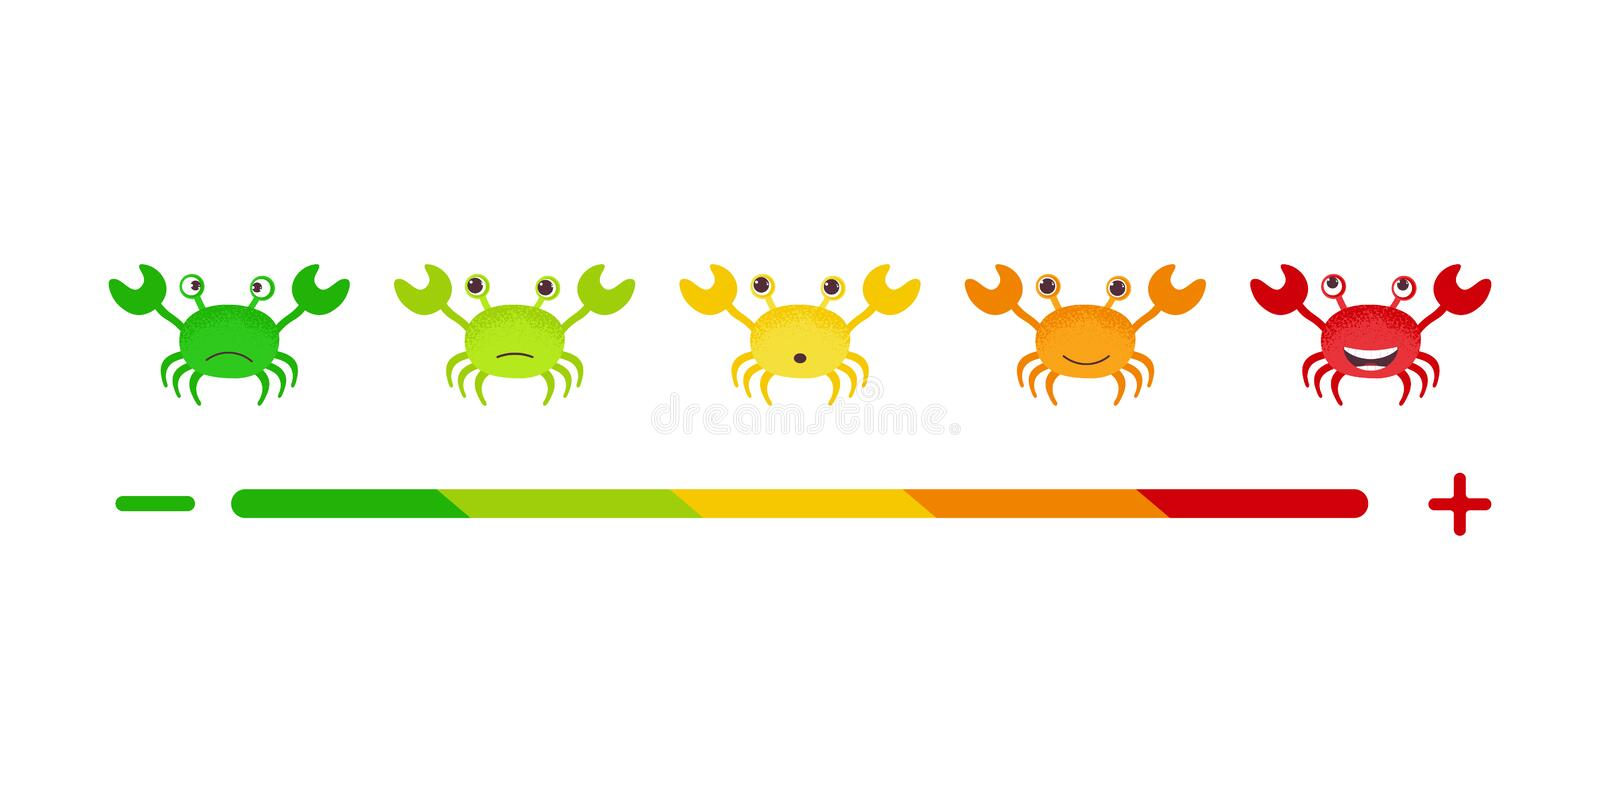 Feedback or rating scale with smiles crab stock illustration